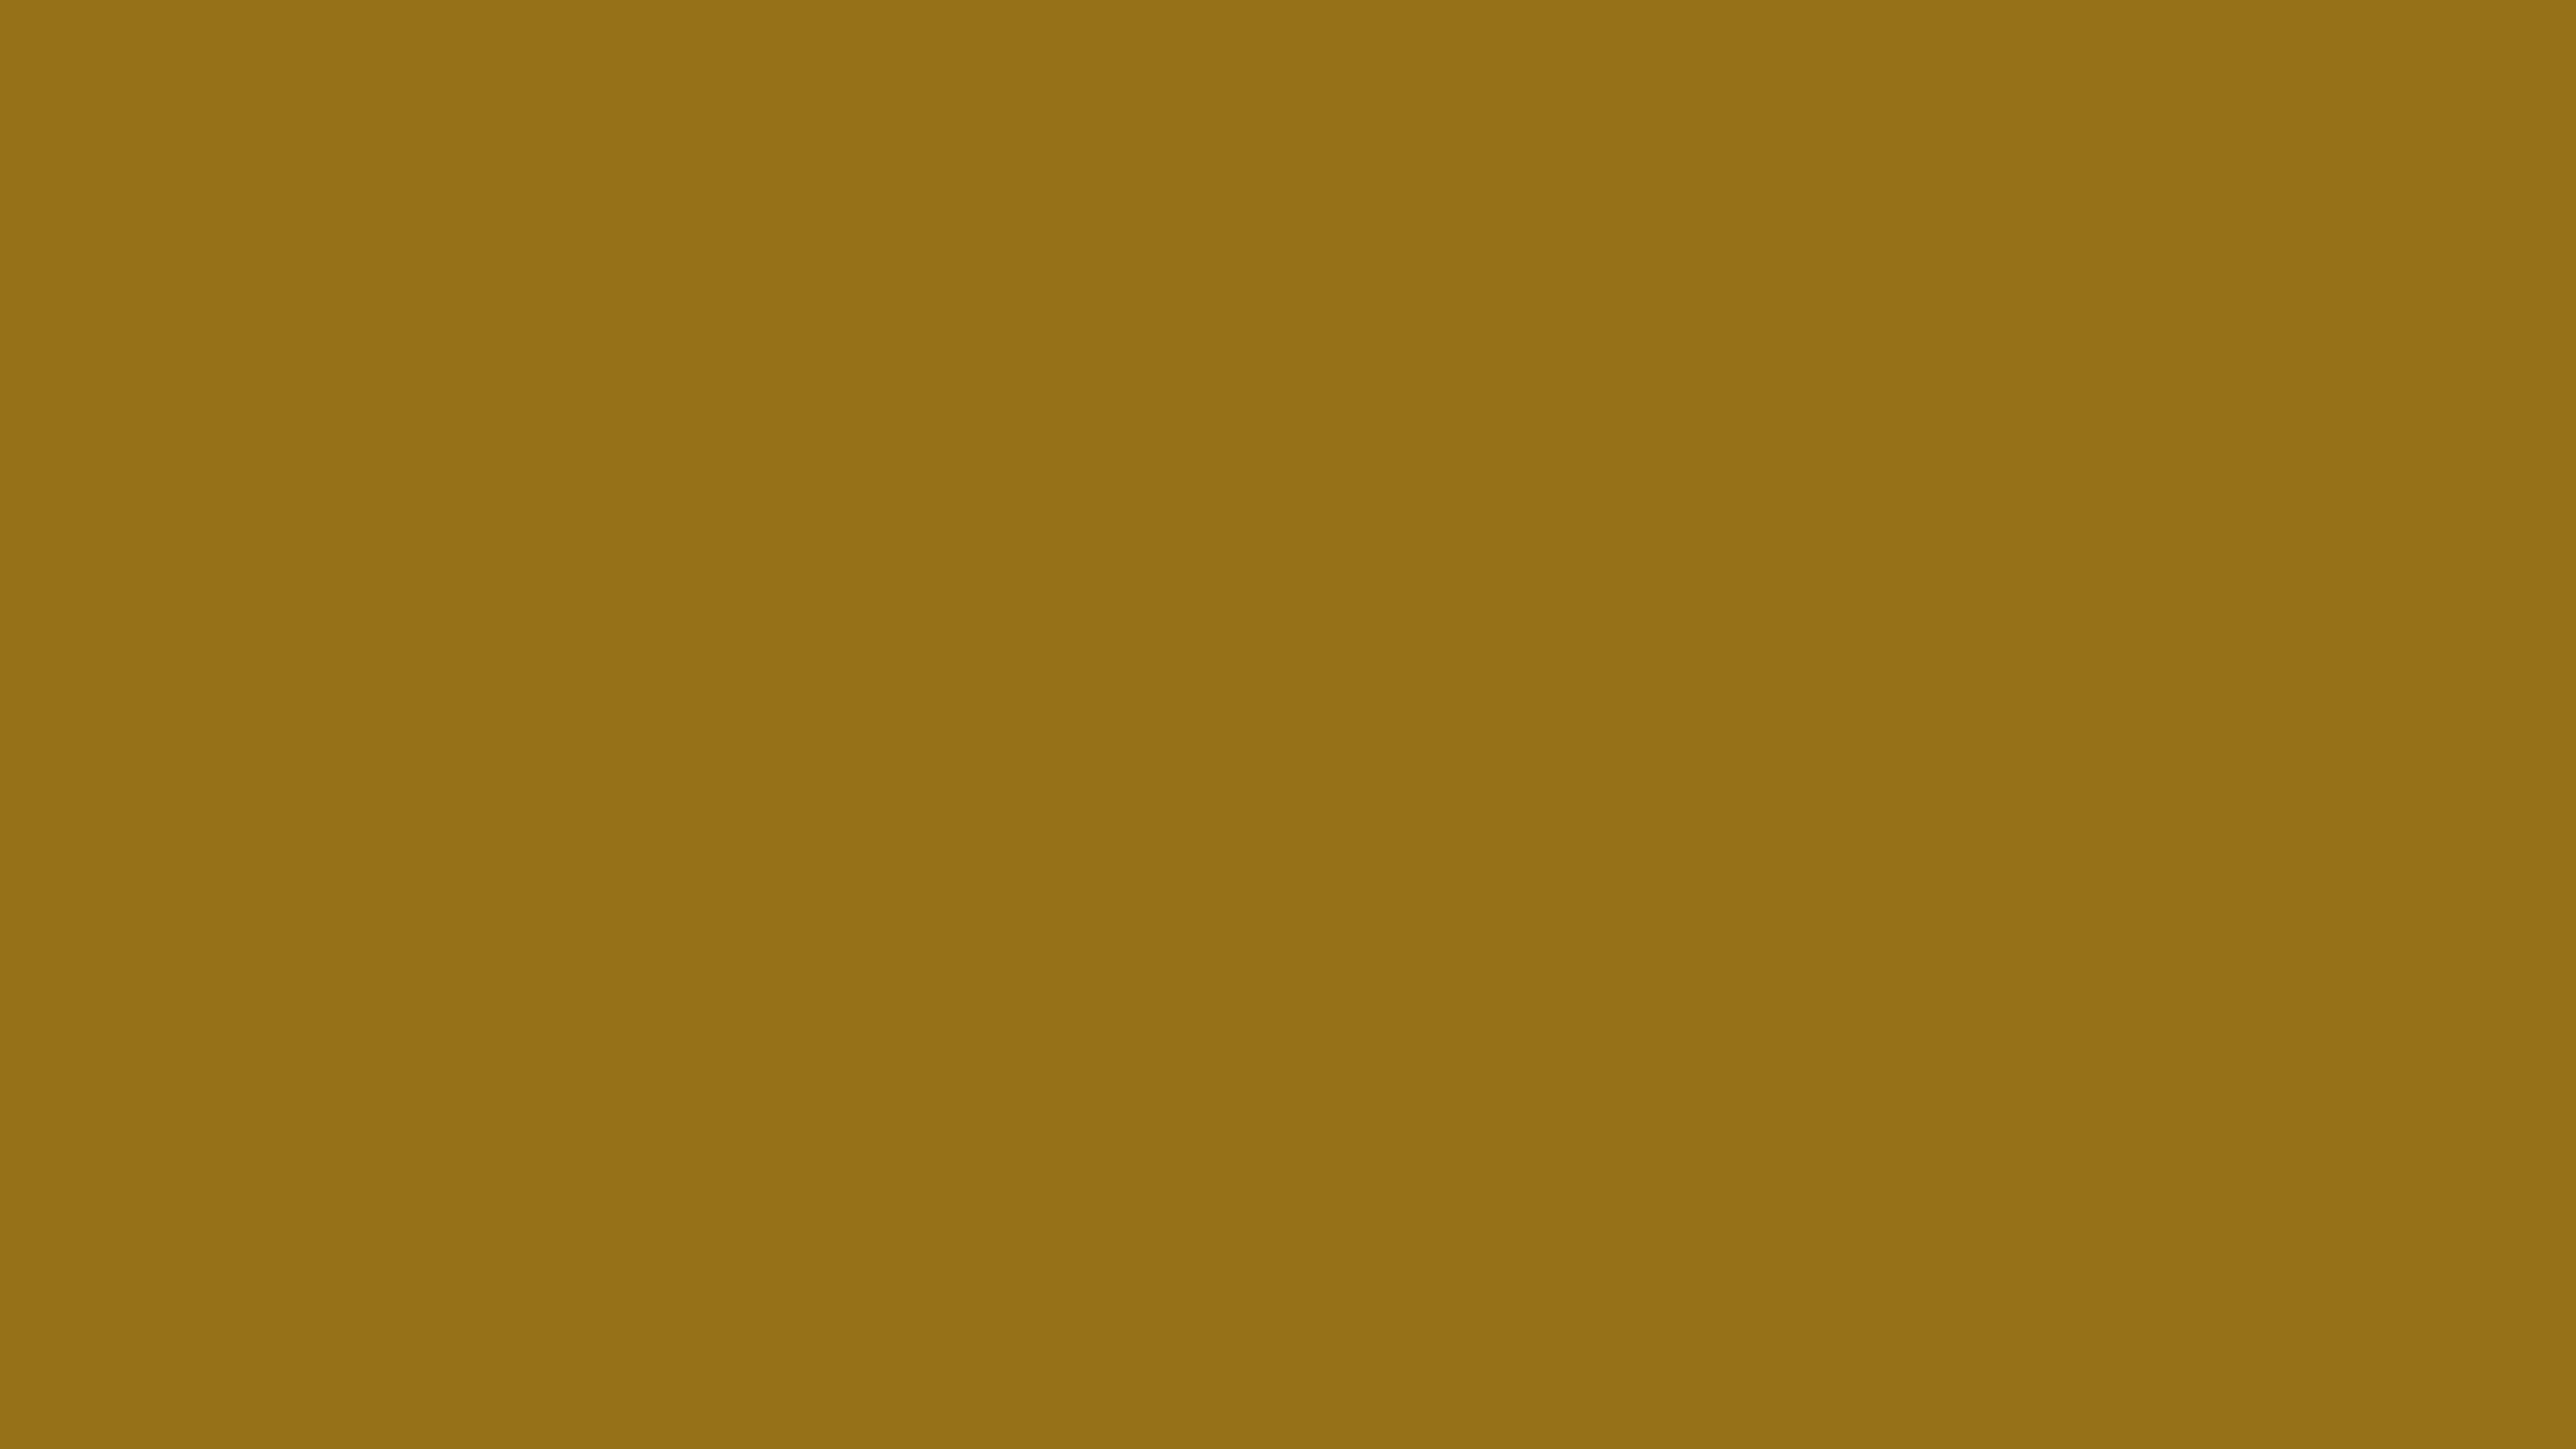 3840x2160 Drab Solid Color Background